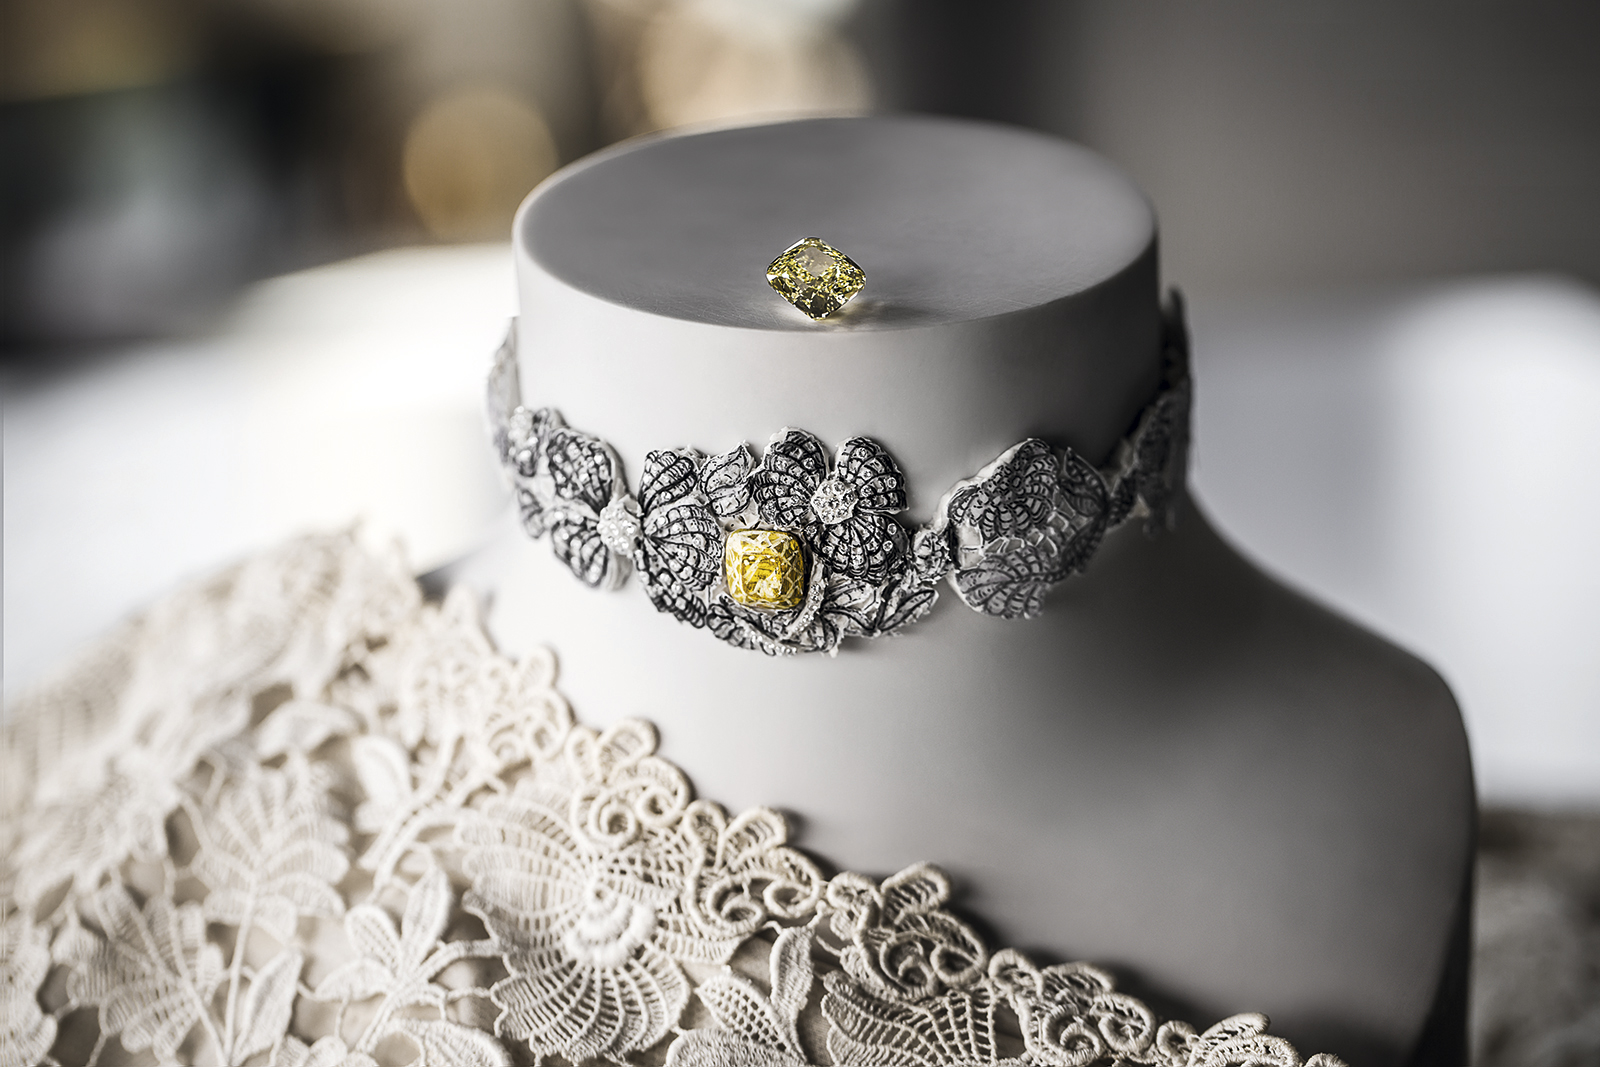 Dior 'Dentelle Guipure Spinelle Jaune' necklace in white gold, yellow diamond and diamonds